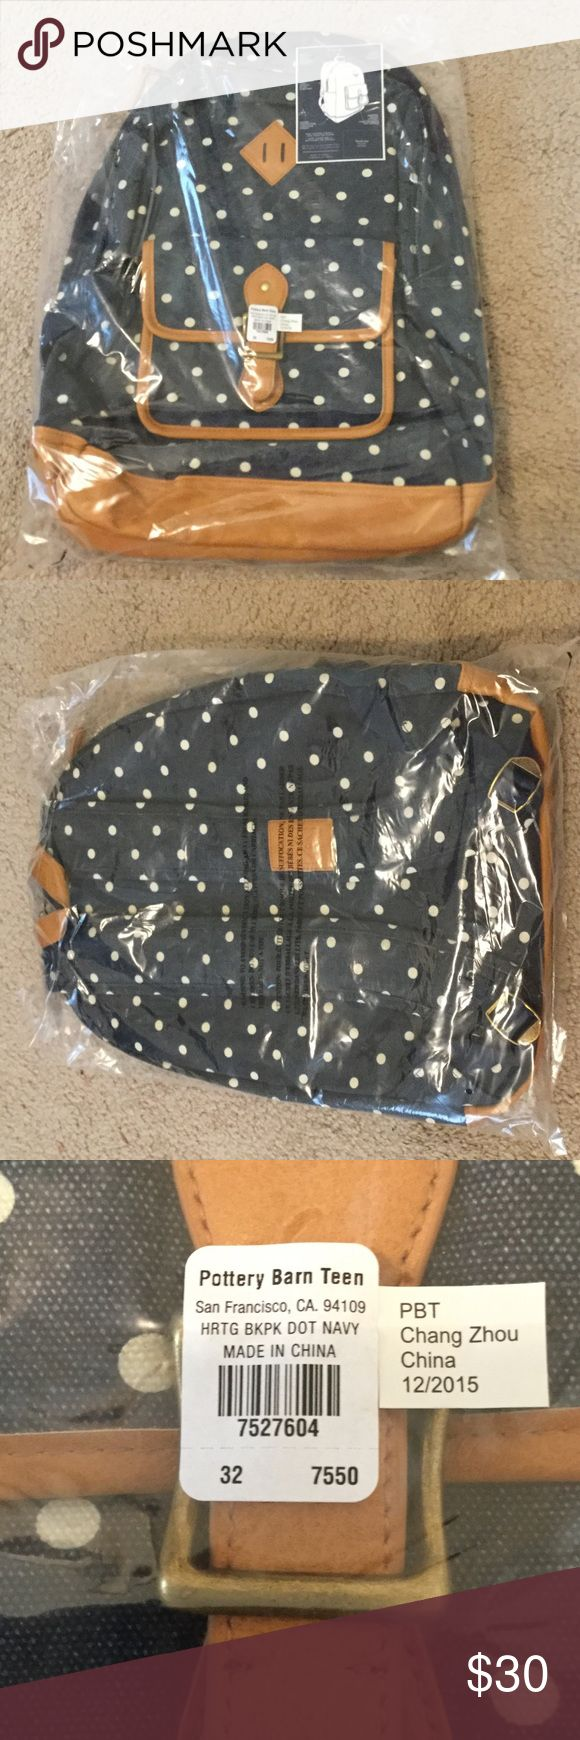 Brand new Pottery Barn Teen Backpack NWT still in the packaging PB teen backpack. Navy with white polka dots and brown leather trim, perfect for back to school! Pottery Barn Teen Bags Backpacks